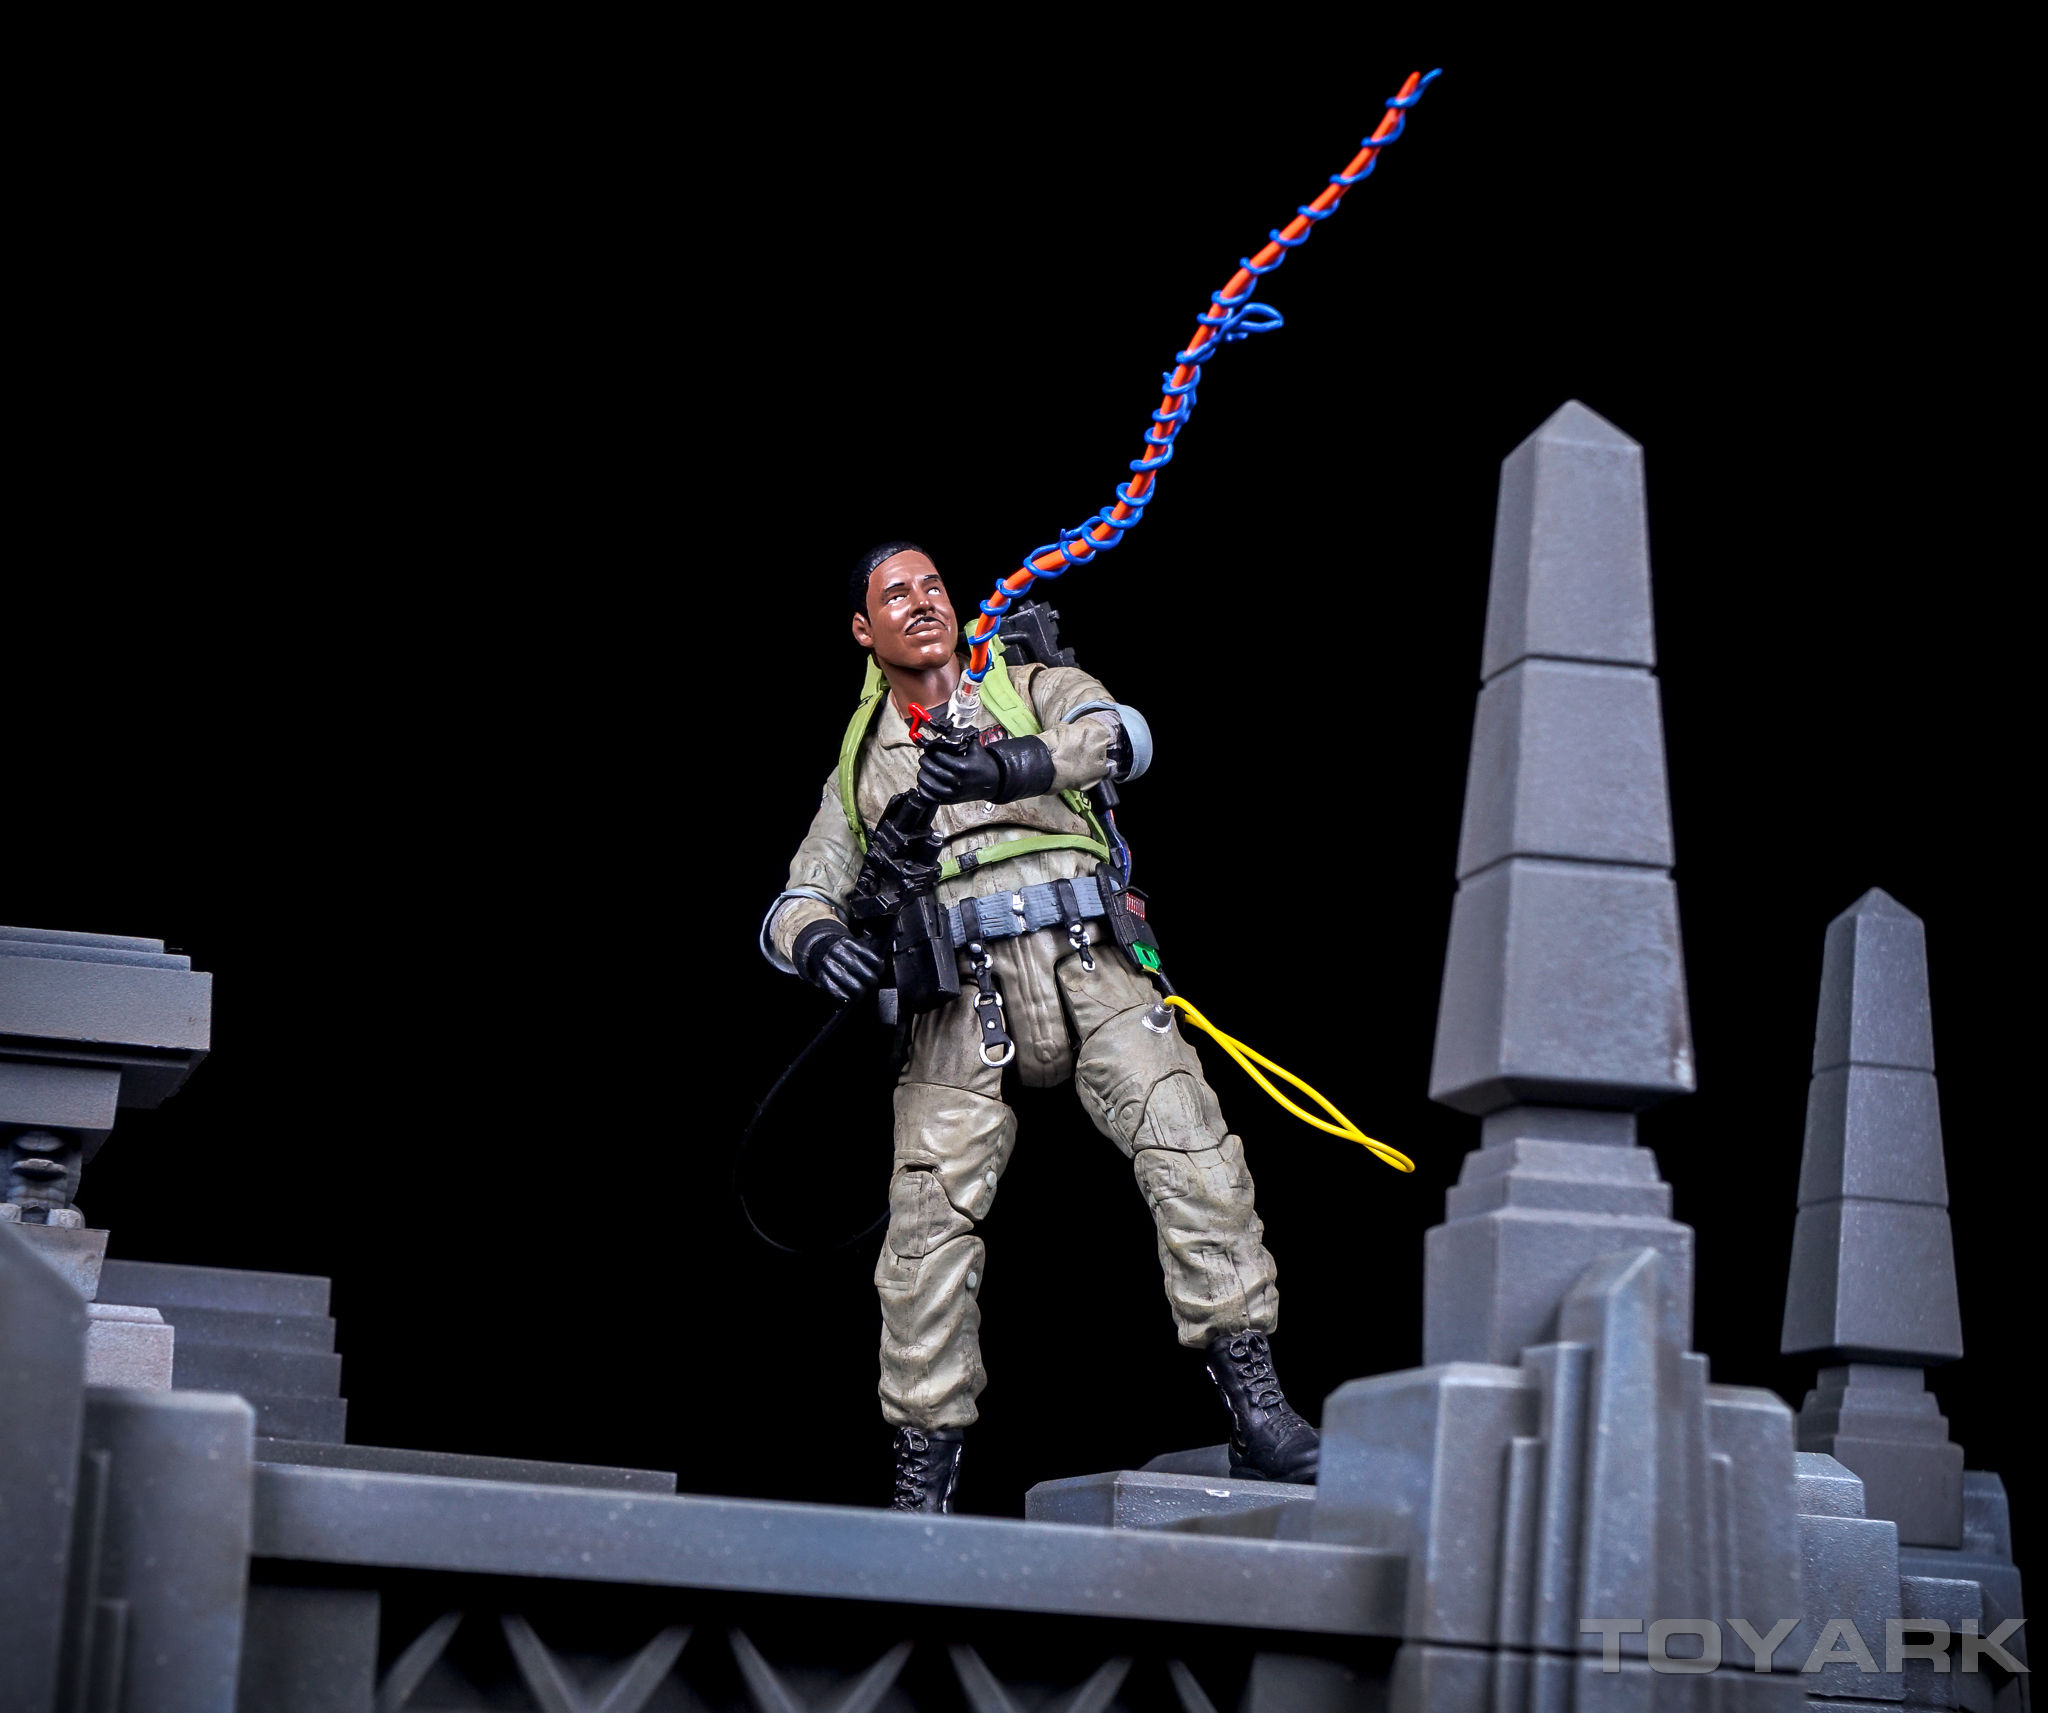 http://news.toyark.com/wp-content/uploads/sites/4/2016/05/DST-Ghostbusters-Select-Figures-057.jpg